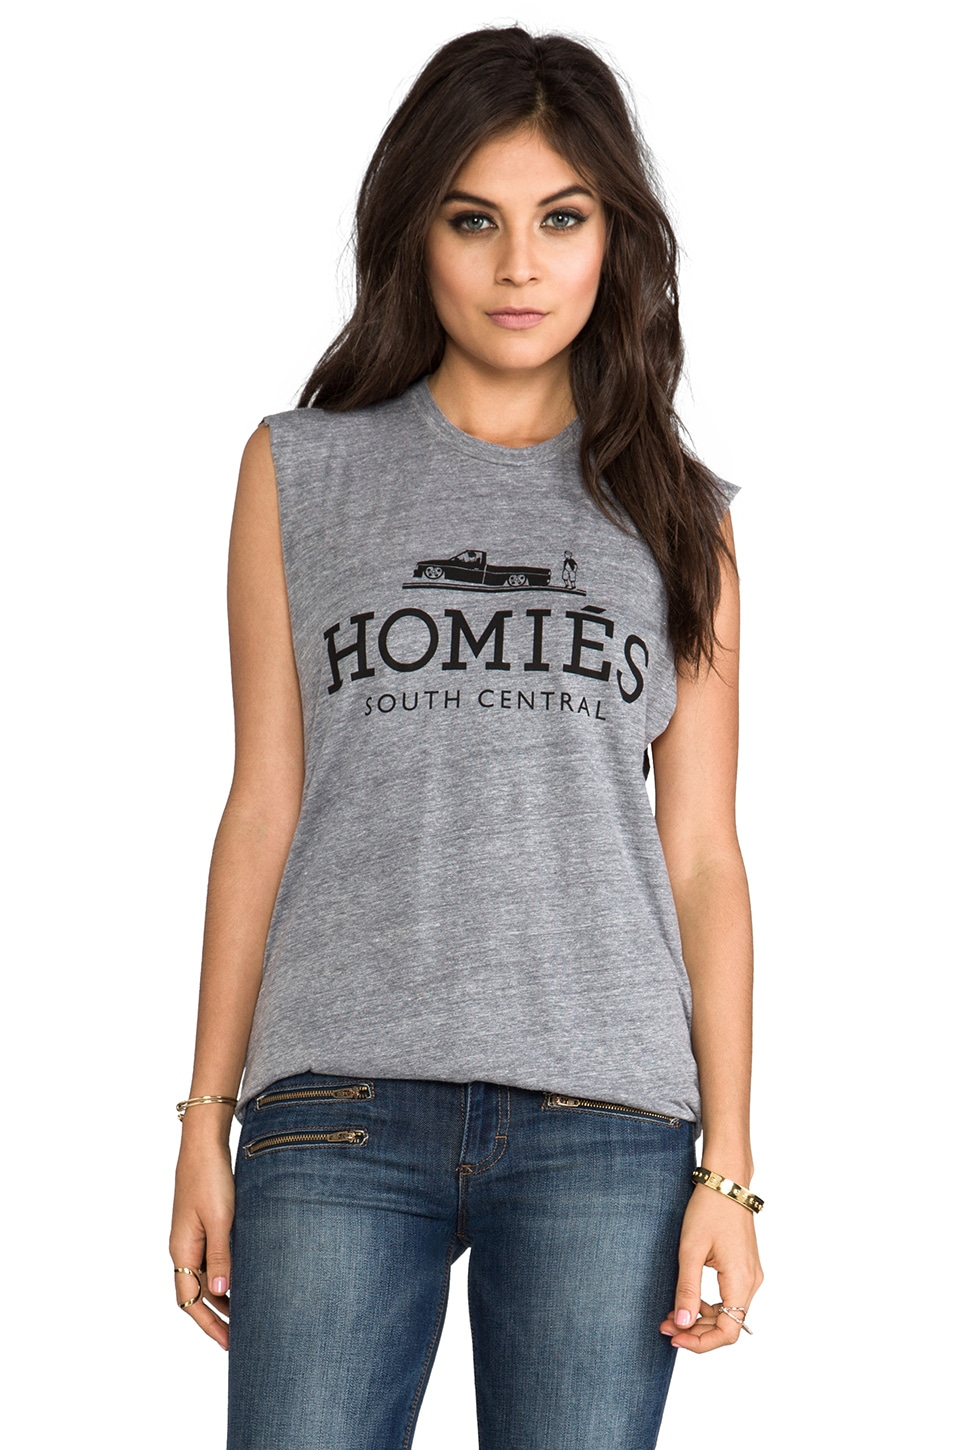 Brian Lichtenberg Homies Muscle Tee in Heather Grey/Black